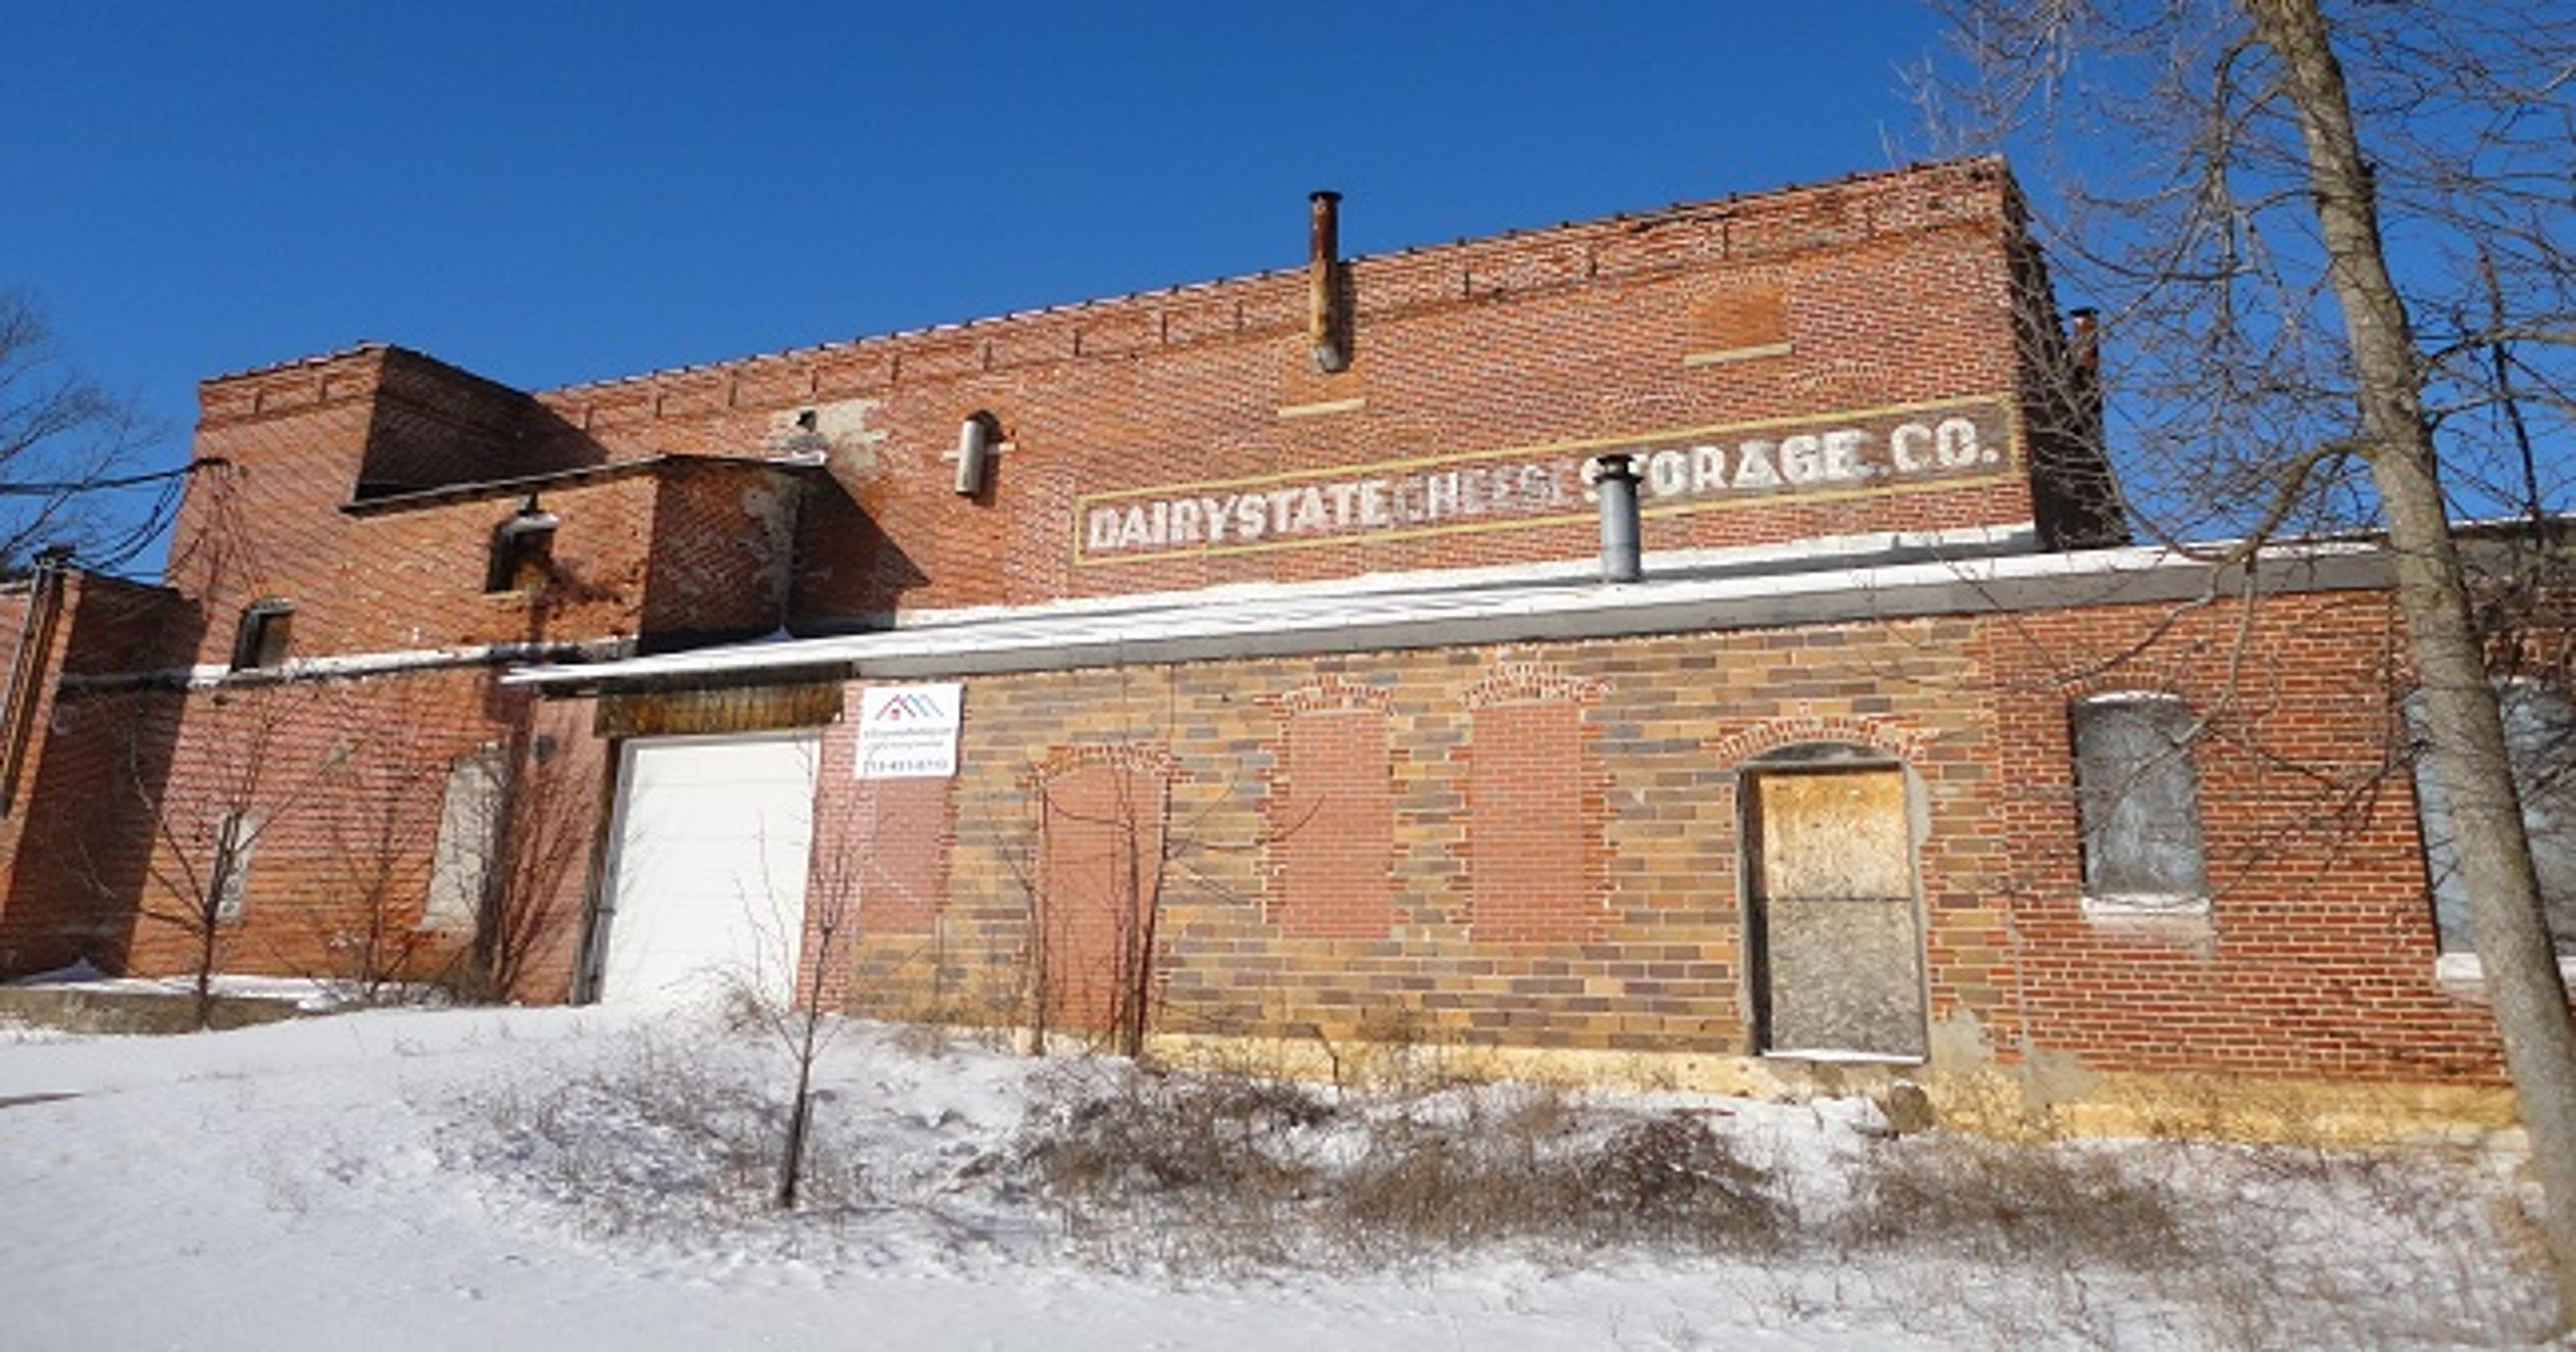 Vintage Venues Dairy State Cold Storage Co